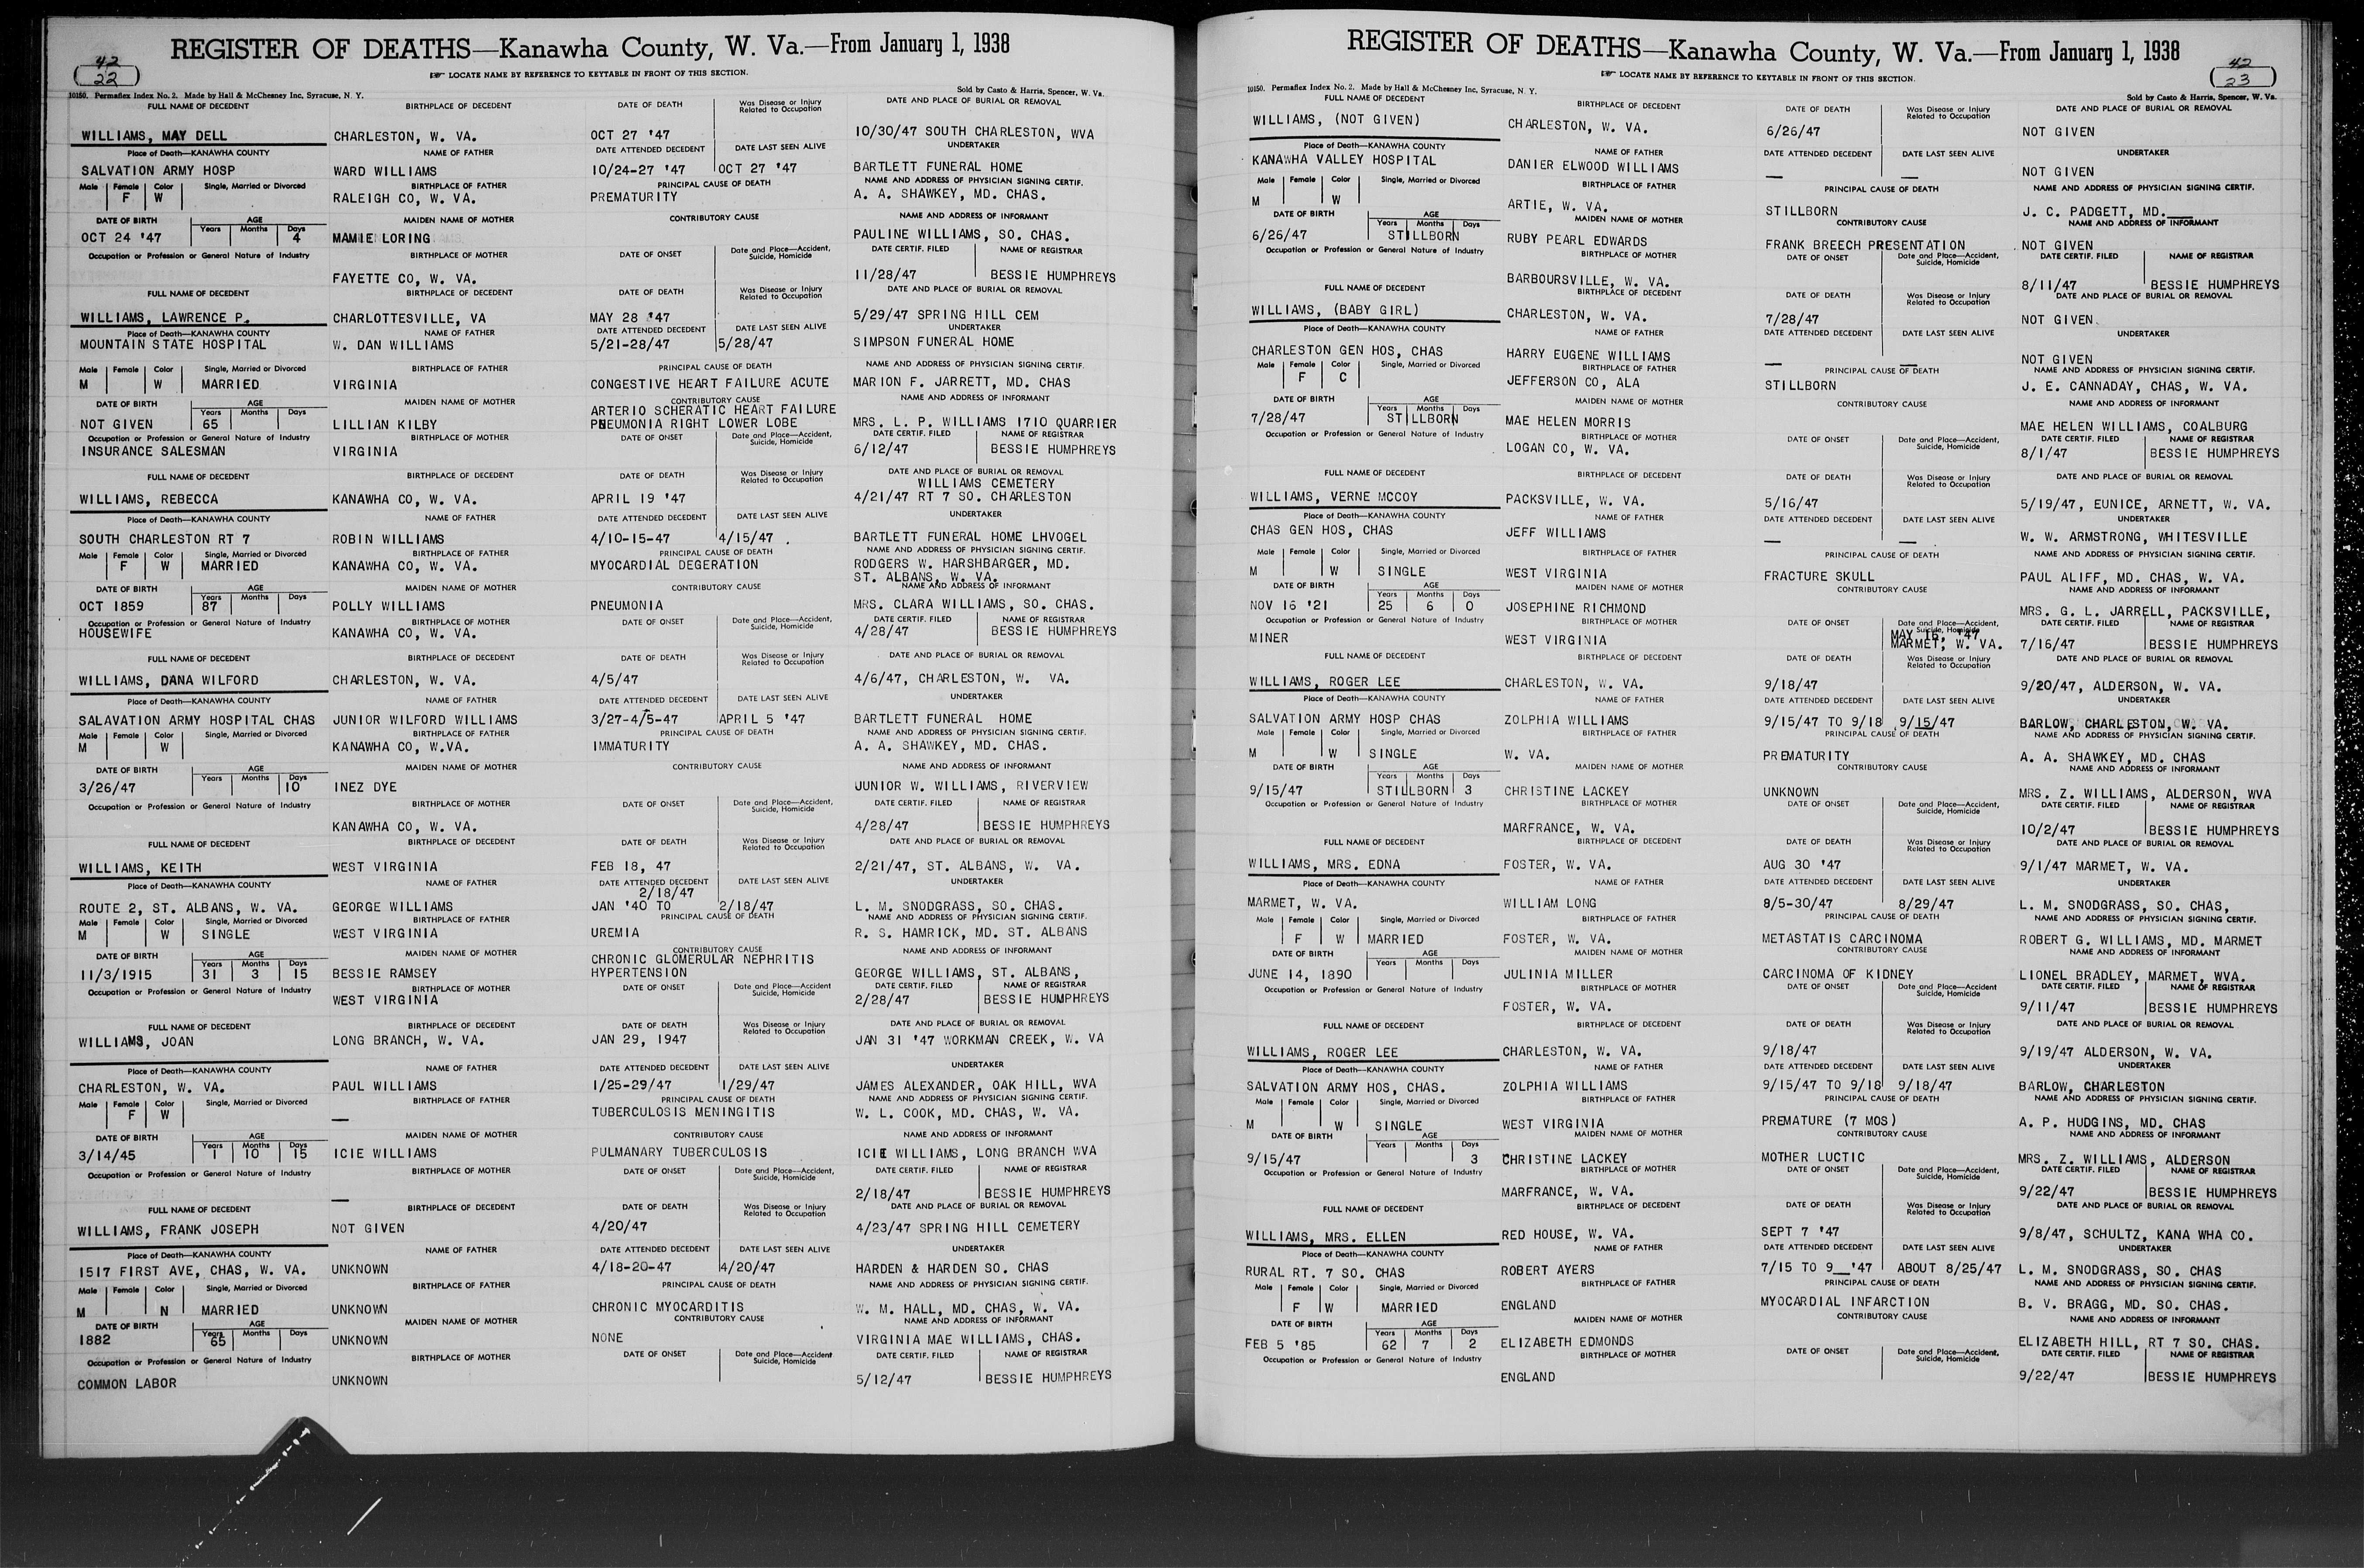 West Virginia Vital Research Records - Record Image